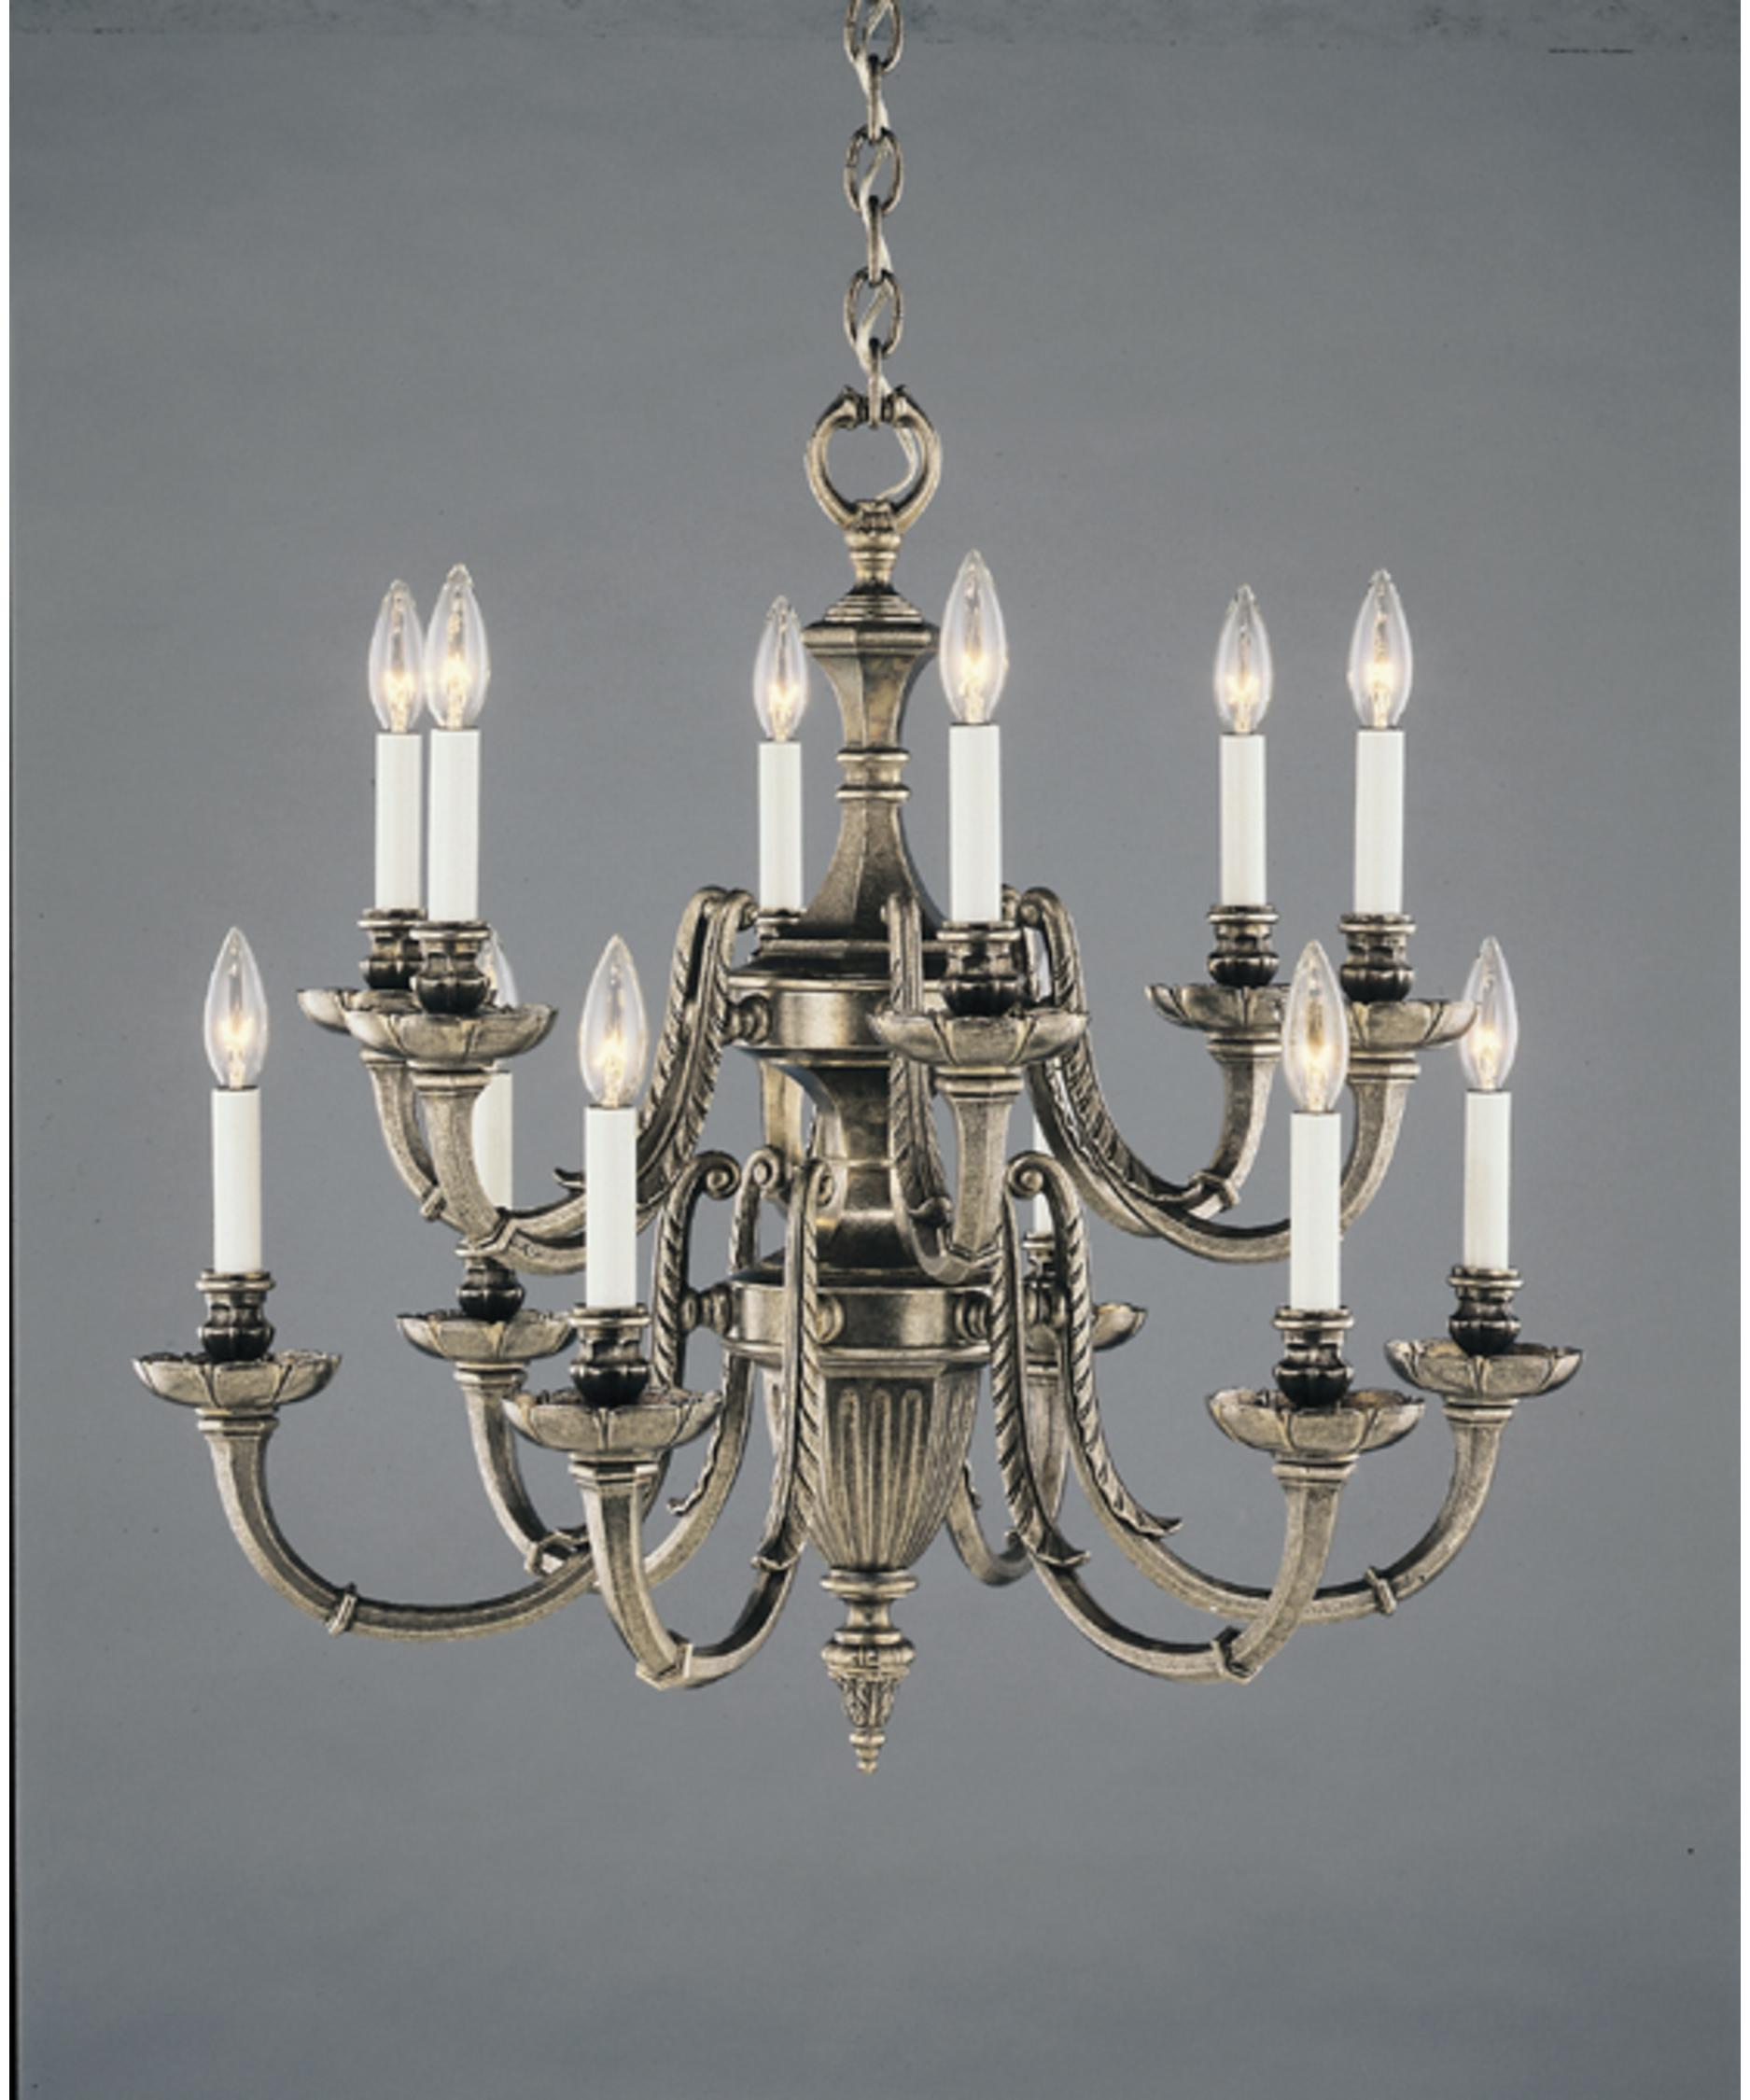 nulco lighting nulco lighting  delft  inch wide  light  - nulco lighting sheraton inch wide light chandelier